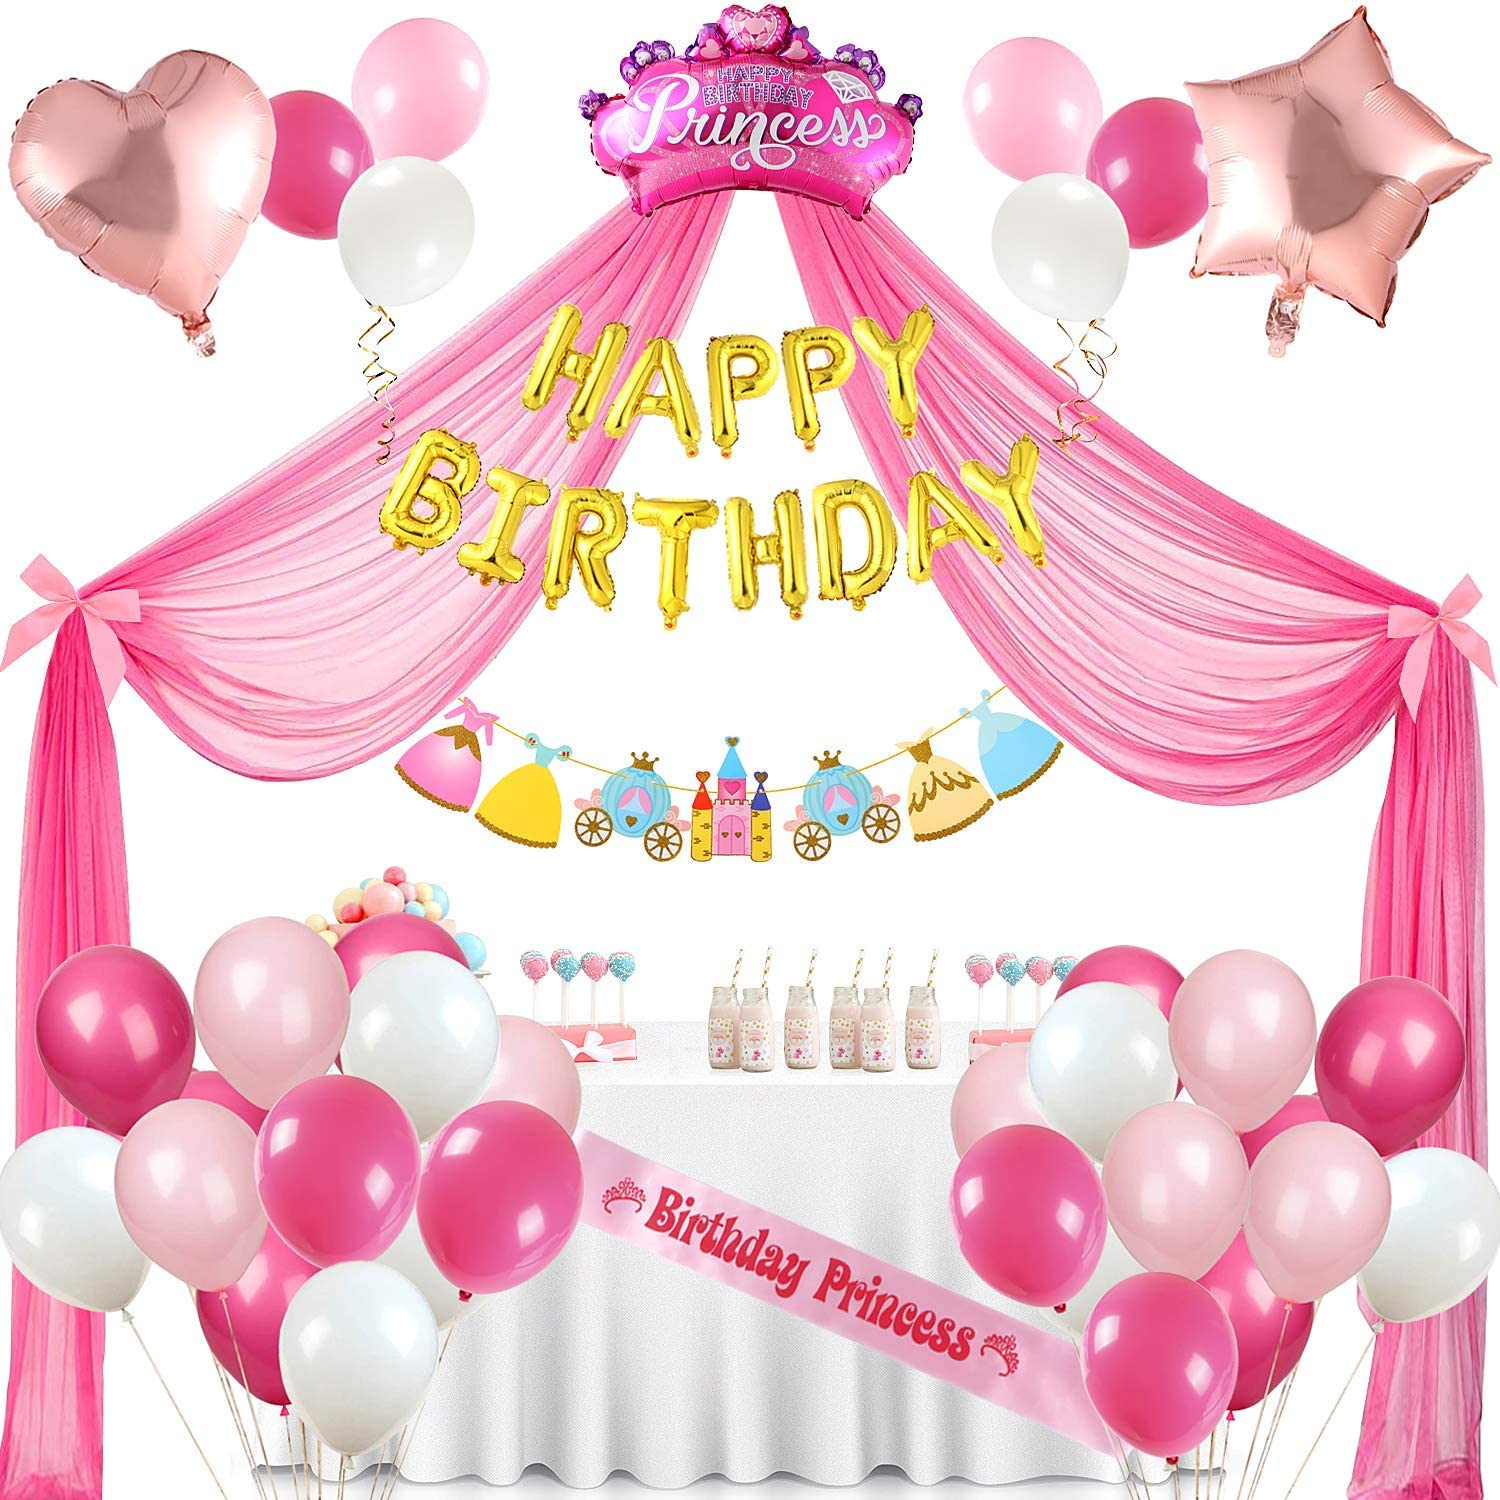 Golray Princess Party Supplies Birthday Decorations for Girls with 33 Balloons, Princess Tulle Backdrop with Bowknot, Gold Happy Birthday Foil Balloons, Princess Flower Banner, Birthday Princess Sash, Ribbon, Star Heart Crown Foil Balloon for Pink and Gold Party Supplies Girls Princess Party Decorations